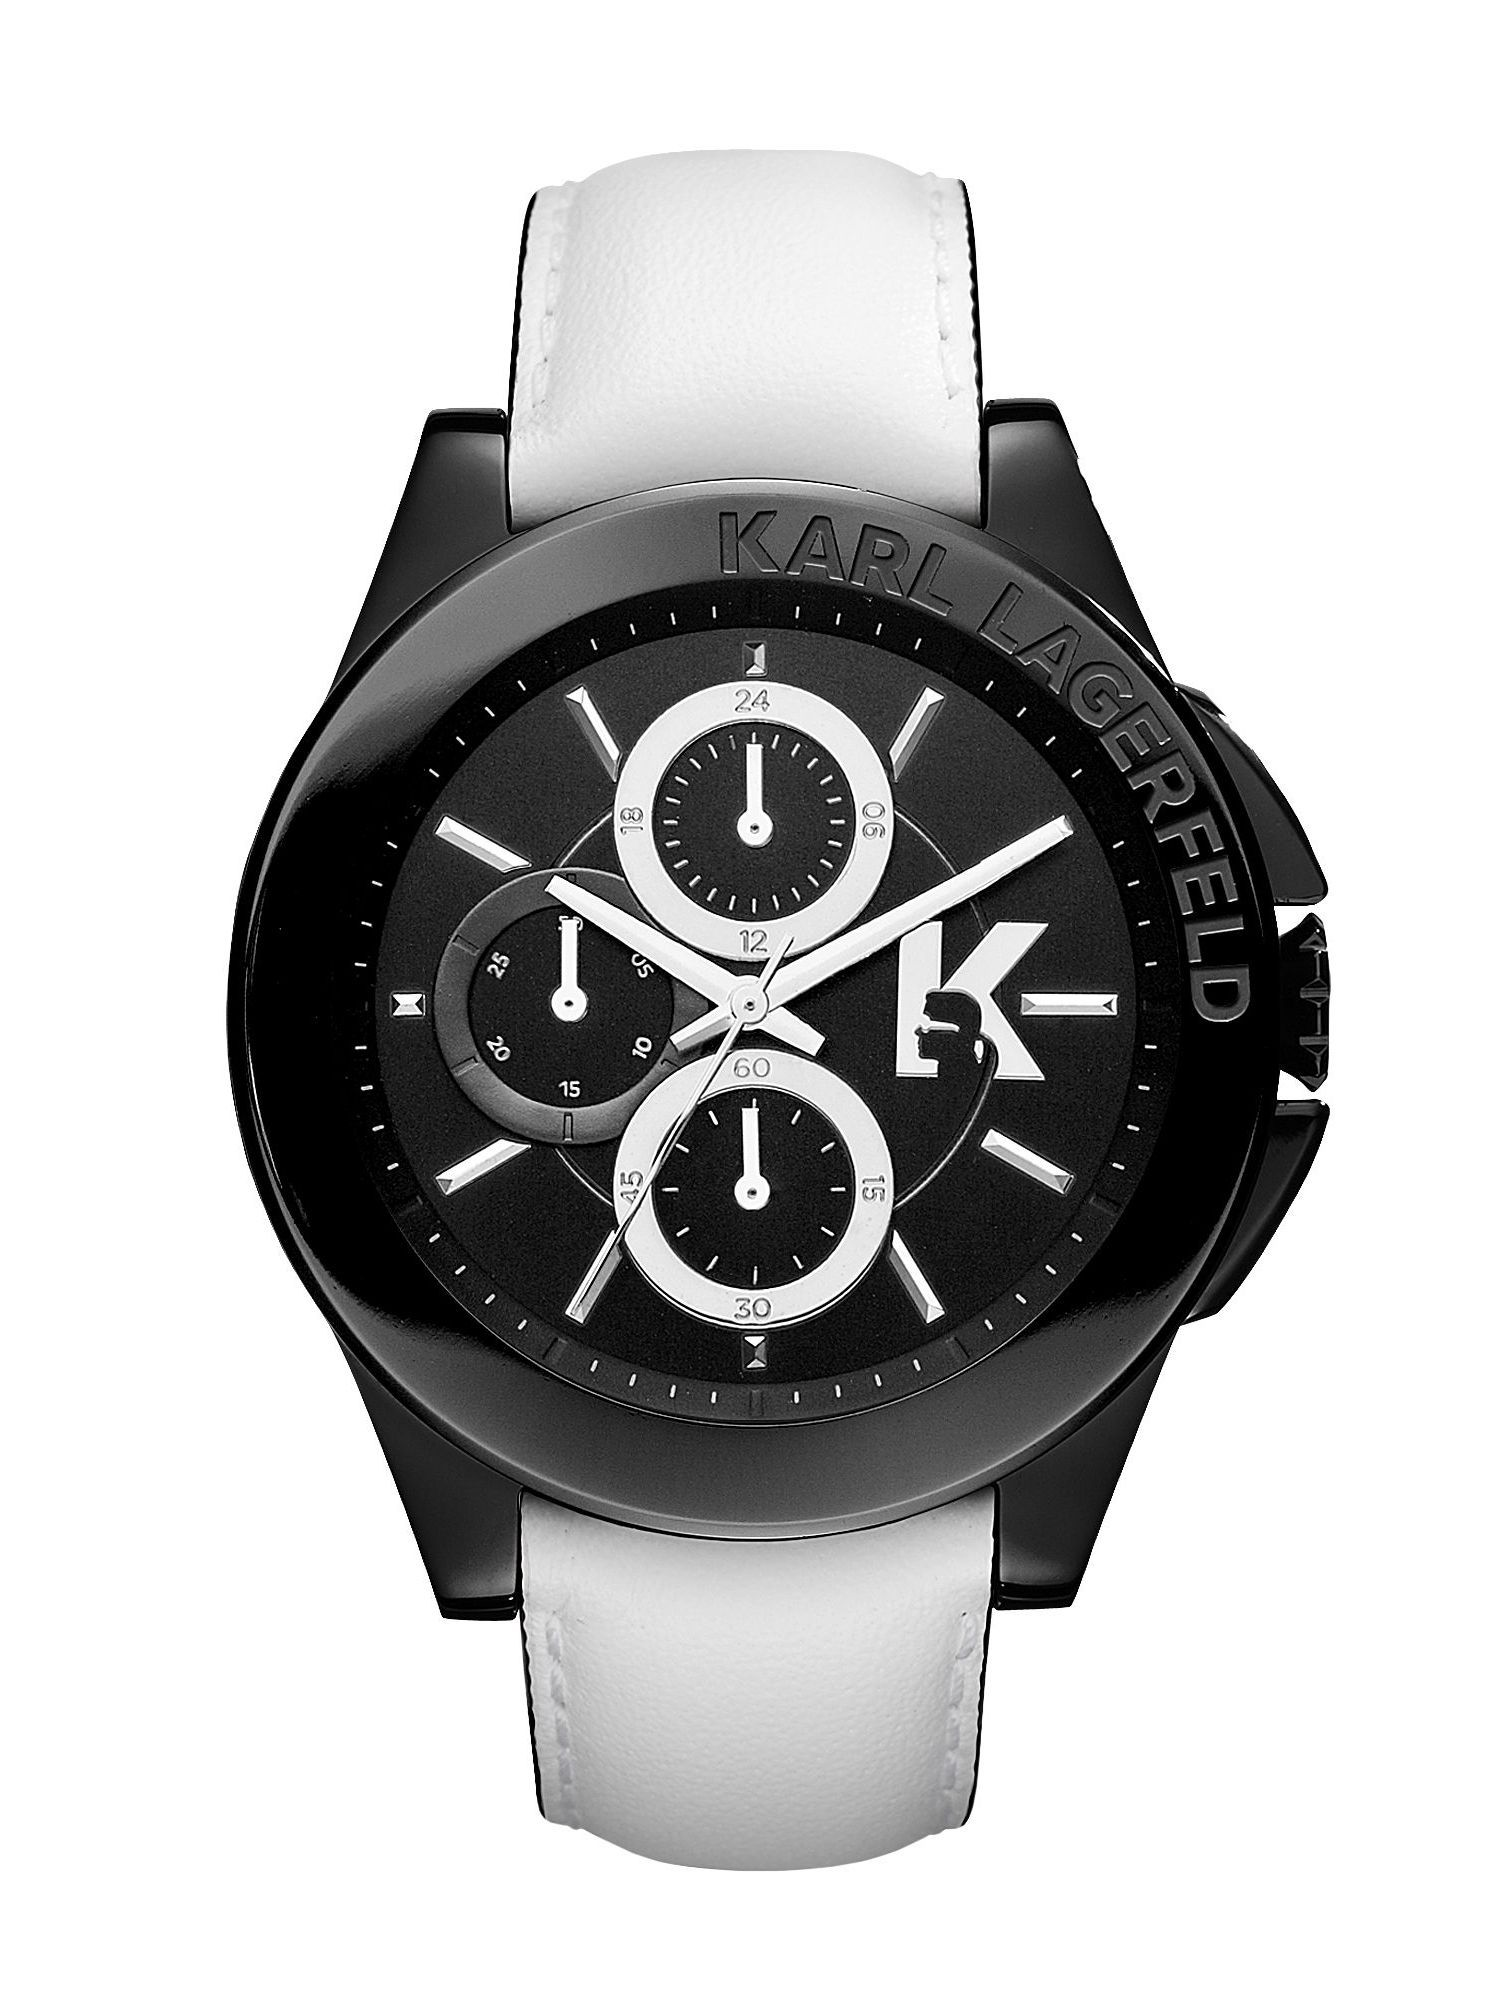 karl lagerfeld sport white leather mens watch in white for men lyst gallery